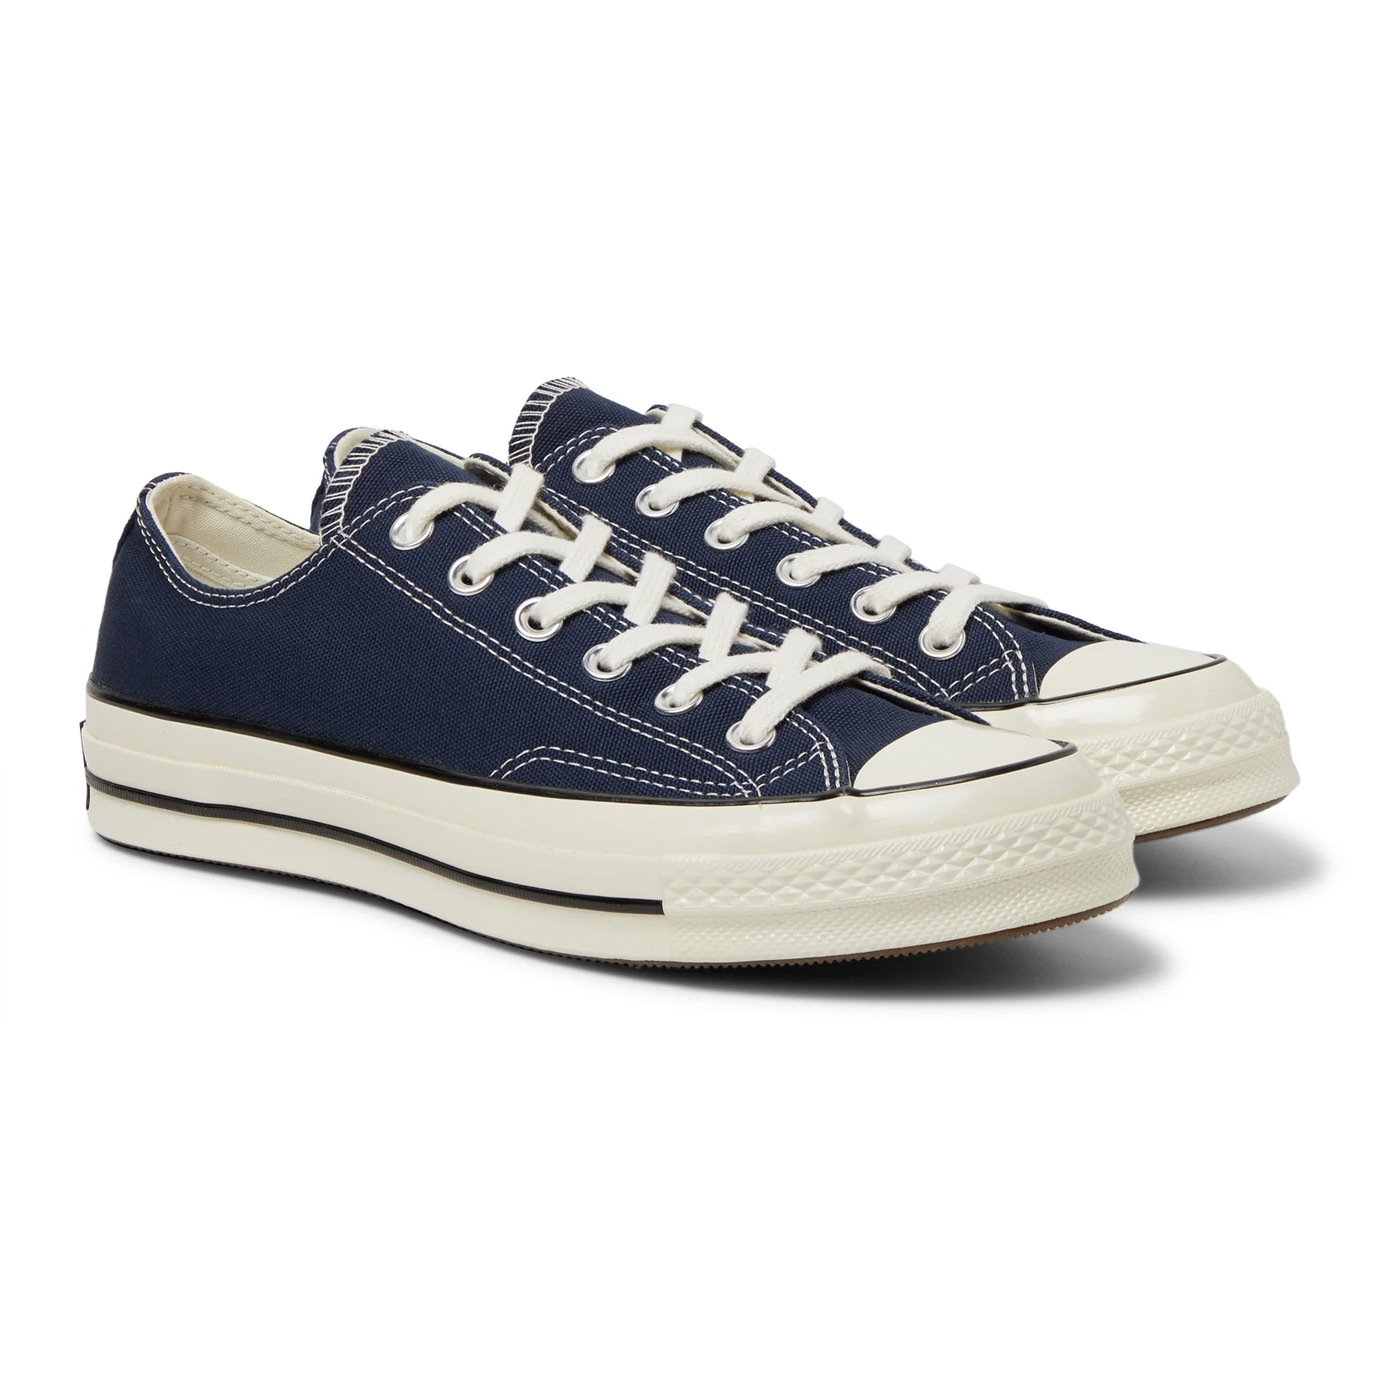 Style Mr Porter Sneakers Converse Chuck 70 Canvas Navy